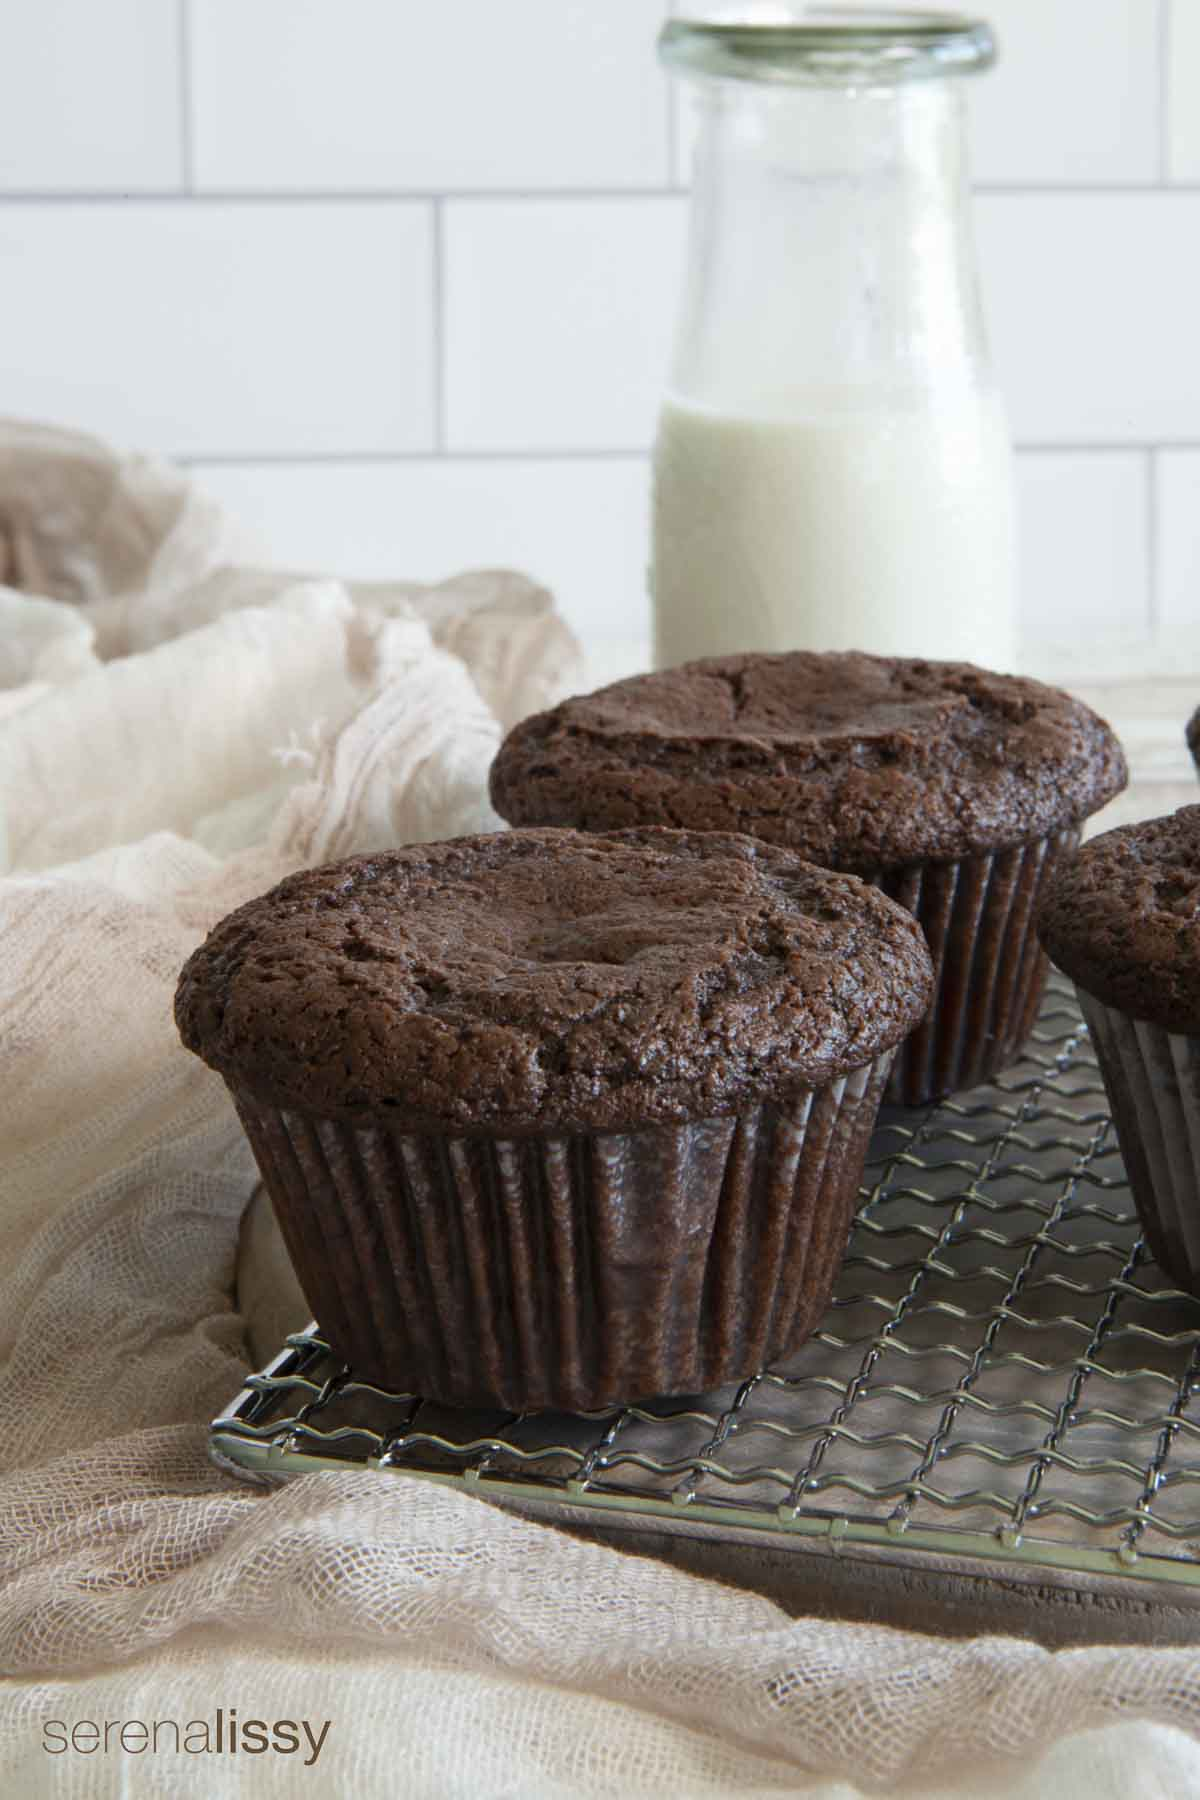 Chocolate muffins with milk